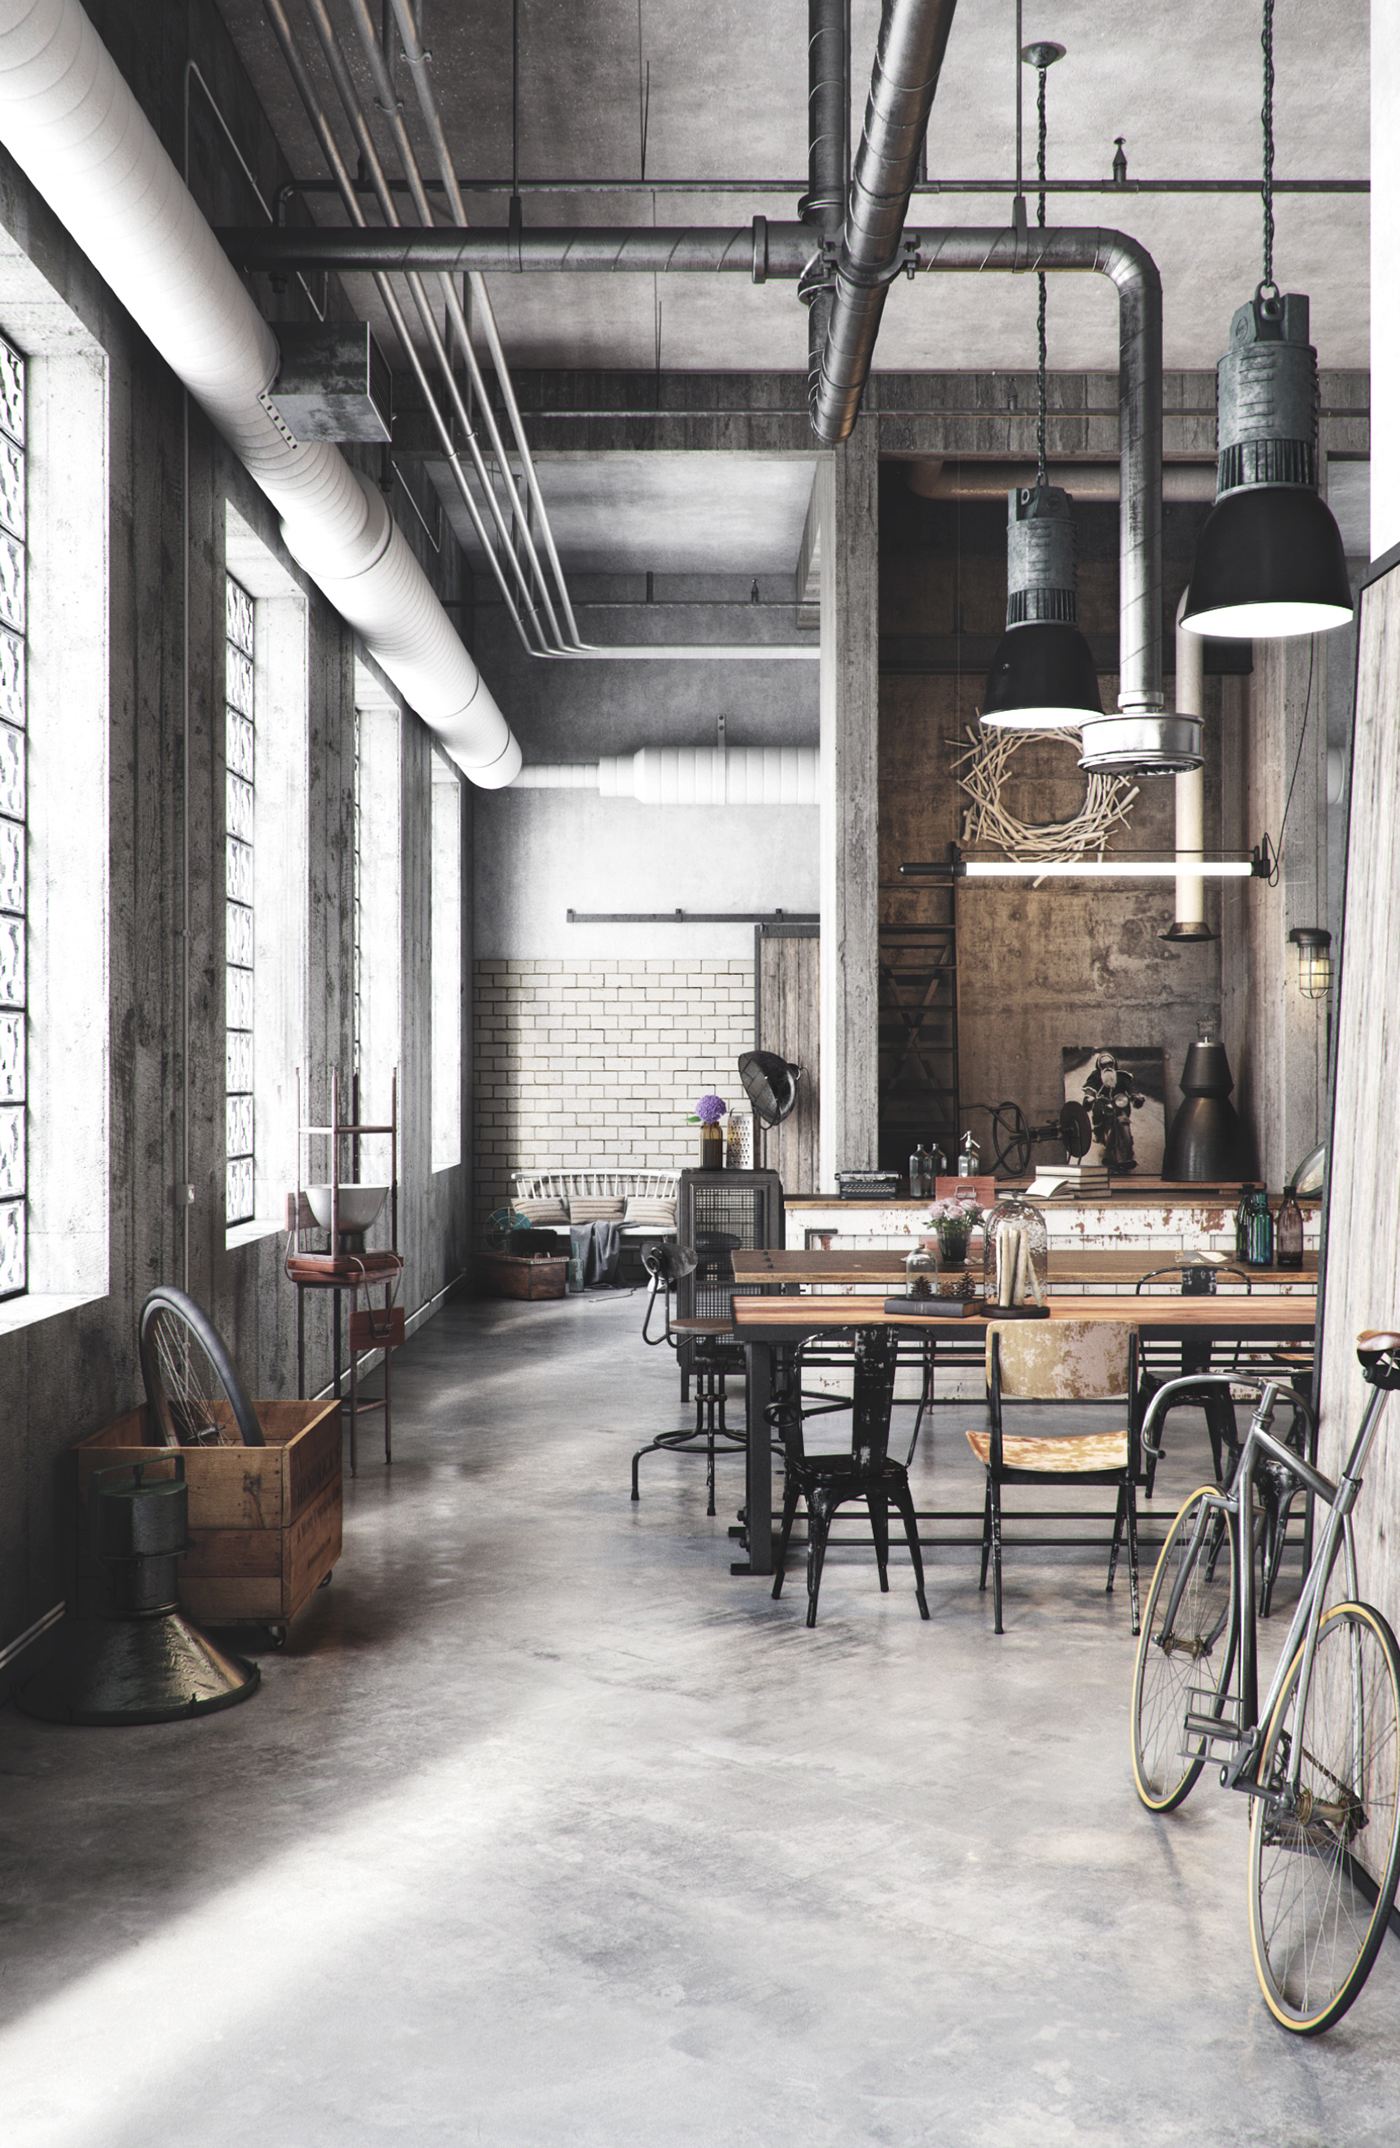 Craft industry rendering on behance - Vintage industrial interior design ...